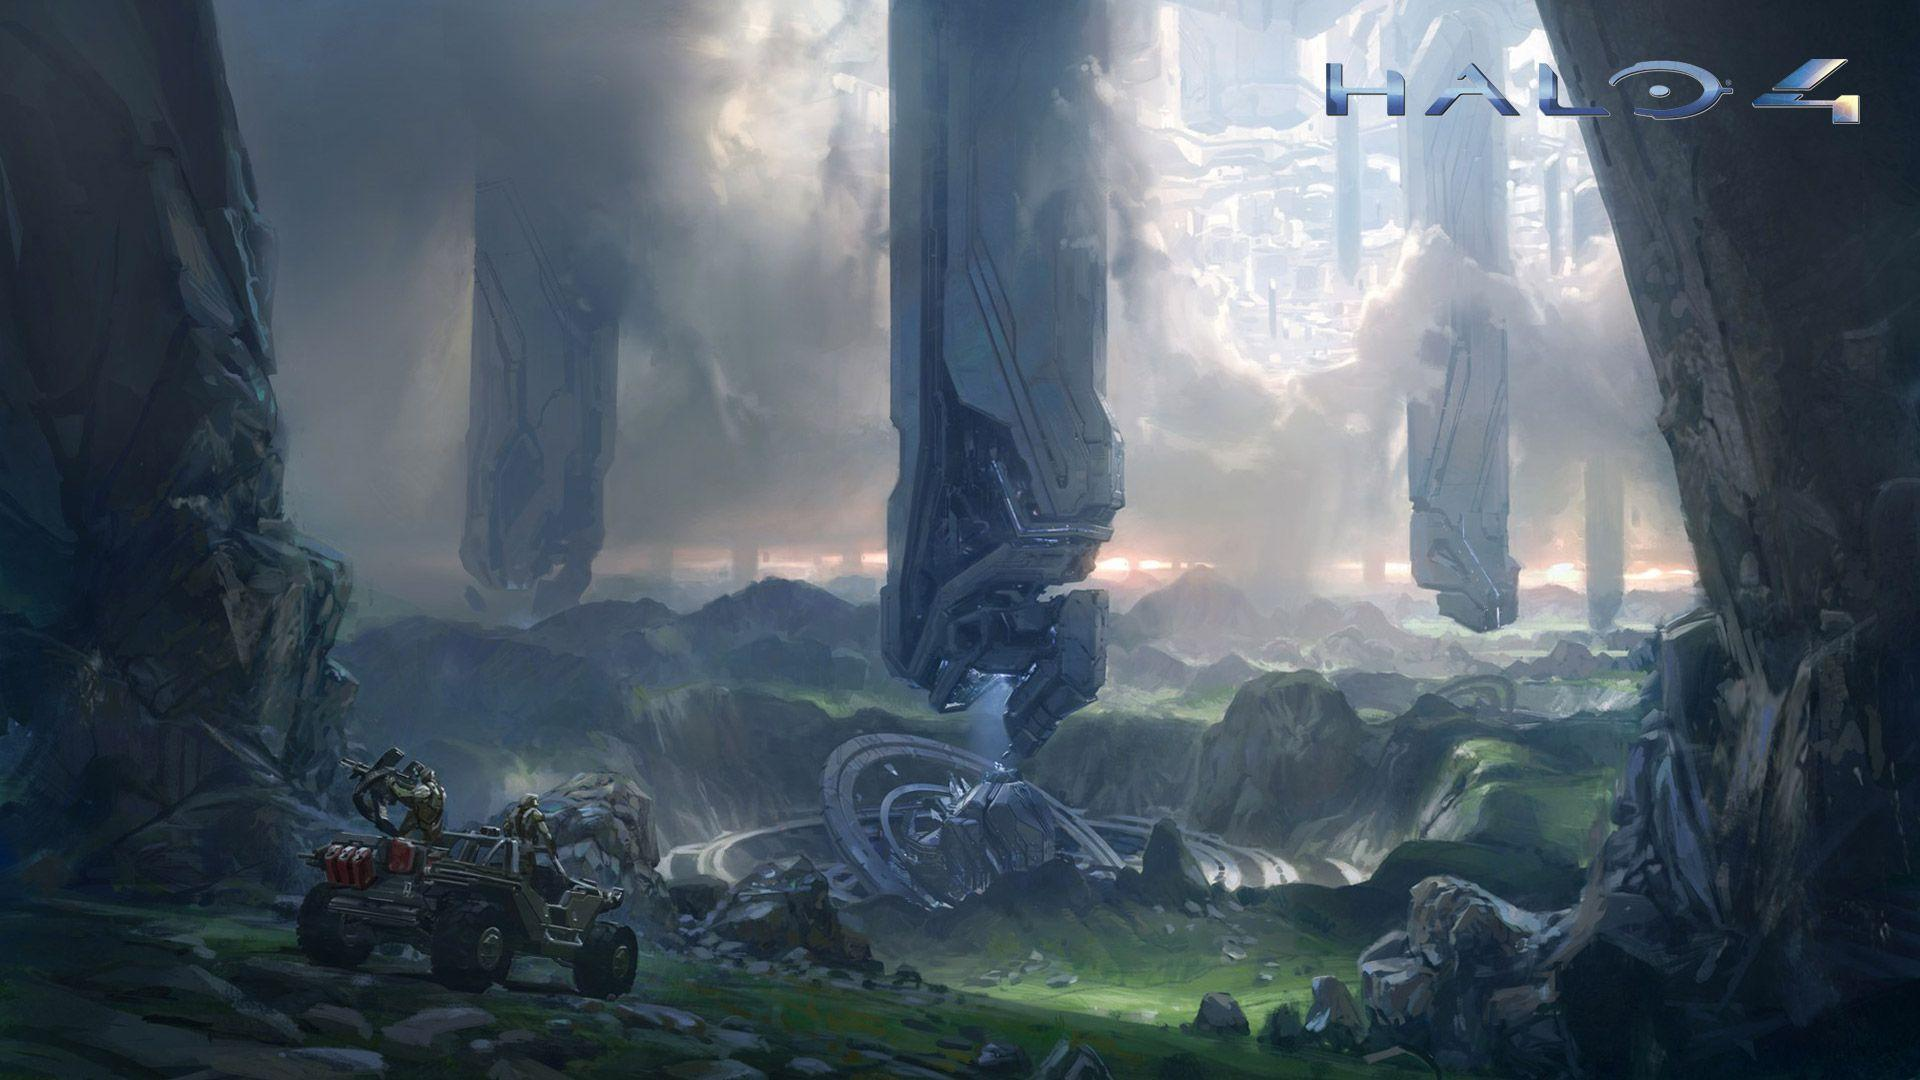 Download Halo 4 Wallpapers High Resolution ~ HD Video Games